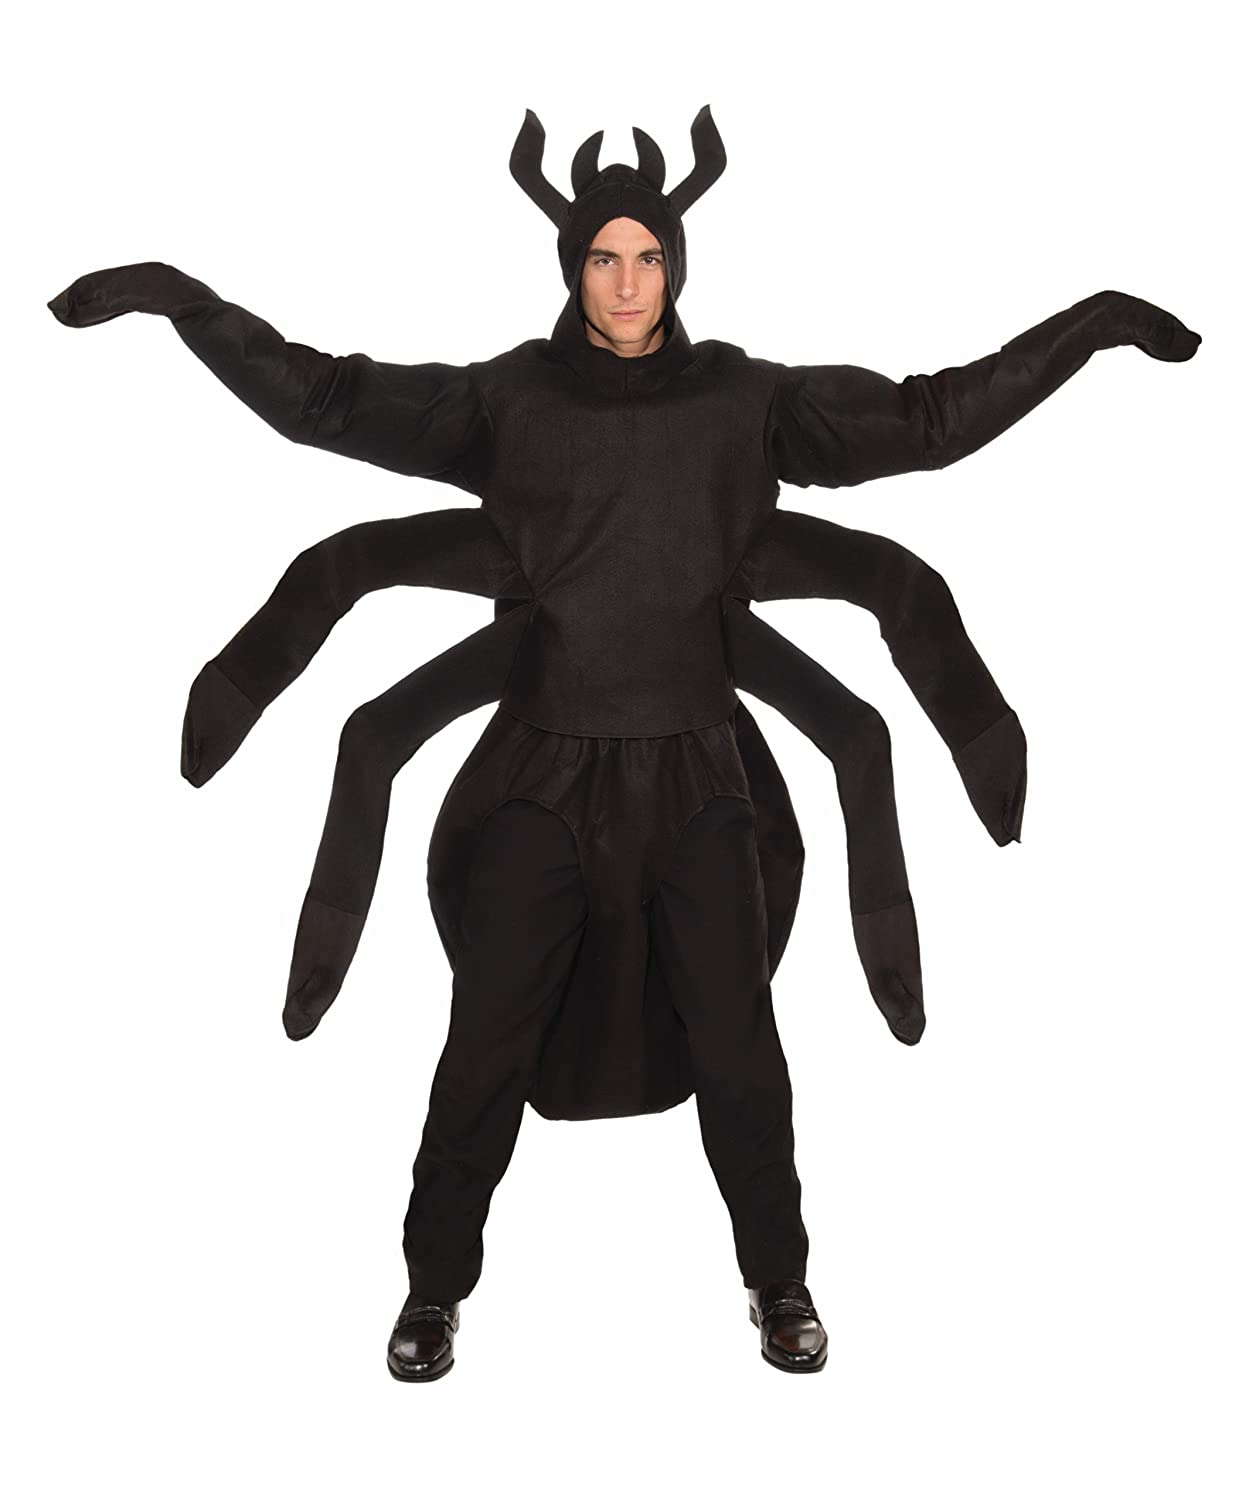 amazoncom forum creepy spider costume black one size clothing - Amazon Halloween Costumes Men